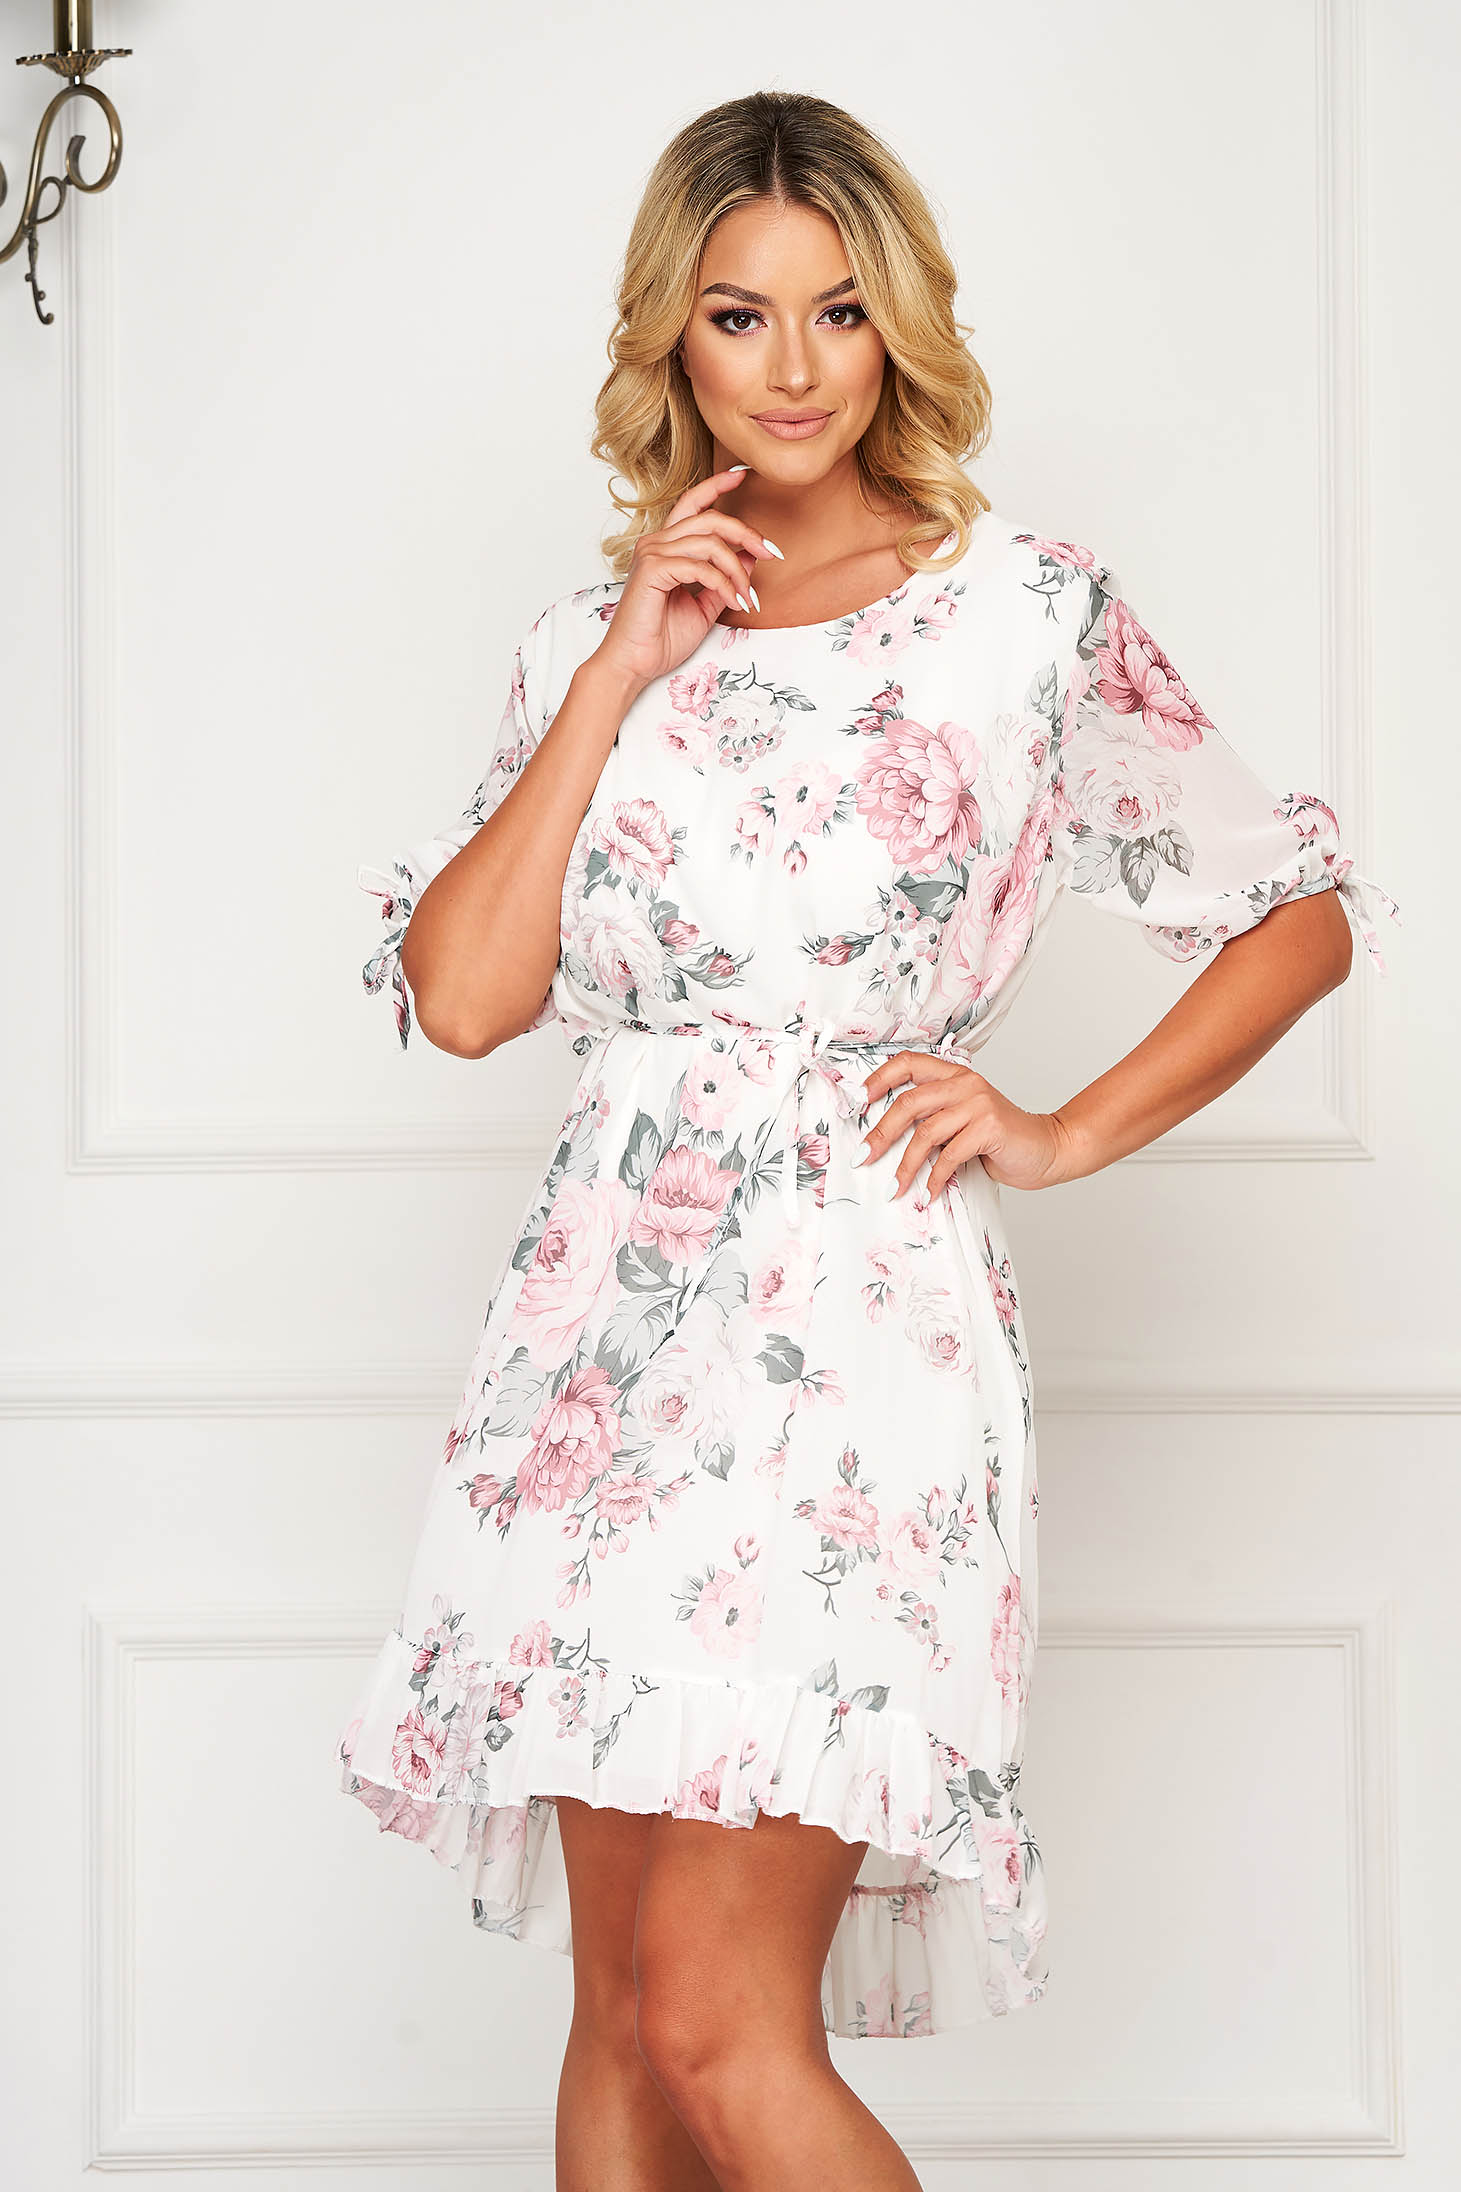 White dress short cut daily from veil fabric straight short sleeves